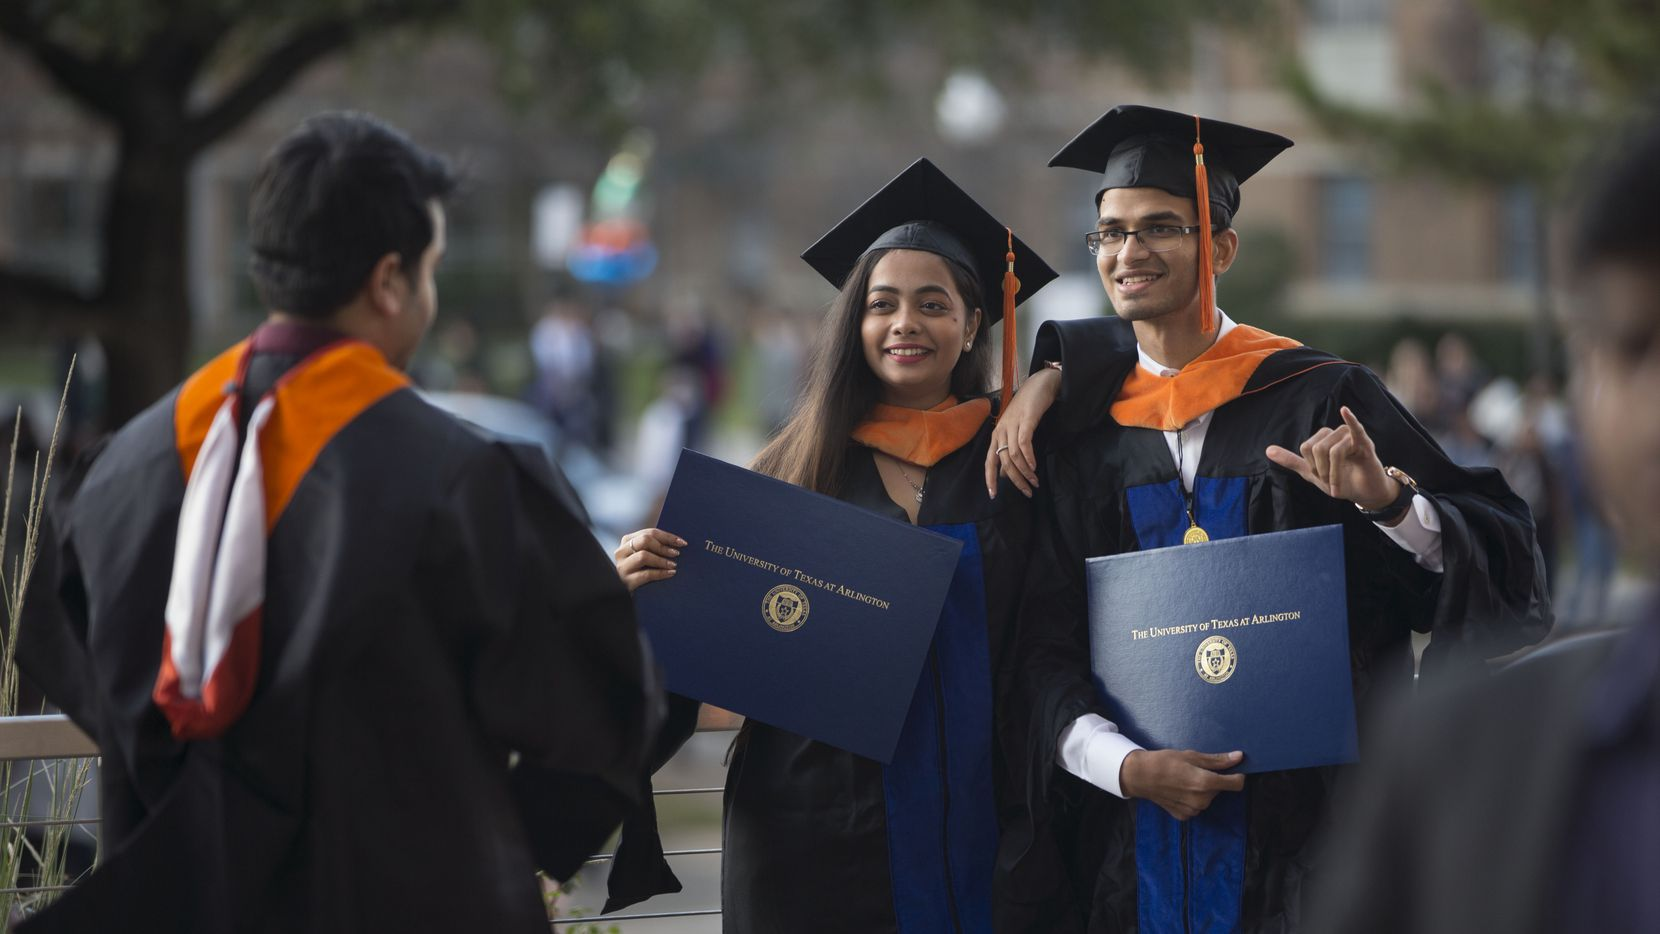 International students like Mrunmayee Kale (center) and Avinash Gayam (right) of the University of Texas at Arlington have contributed to growth and research at universities statewide. But the number of international students has declined in the past two years.